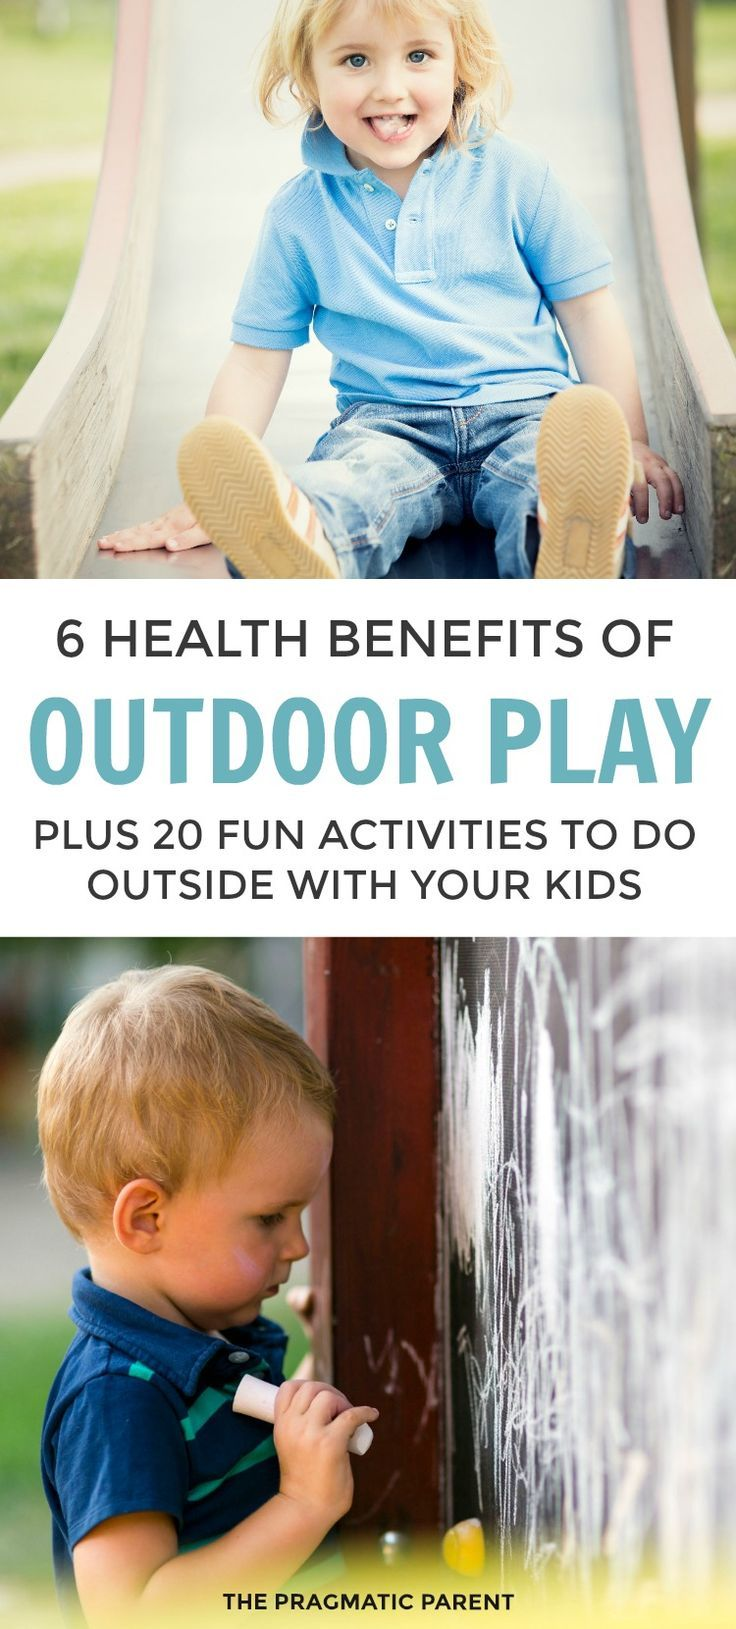 How much time do your kids spend outside? 6 Health Benefits of Outdoor Play plus 20 Fun Ideas for Getting Outdoors ​and Turning Off Screens. Playing outside is fun and crucial to child development and brain function in children. Outdoor activities make playing outside fun and engaging. 20 outdoor play ideas. #playingoutside #outdoorplay #childdevelopment via @https://www.pinterest.com/PragmaticParent/